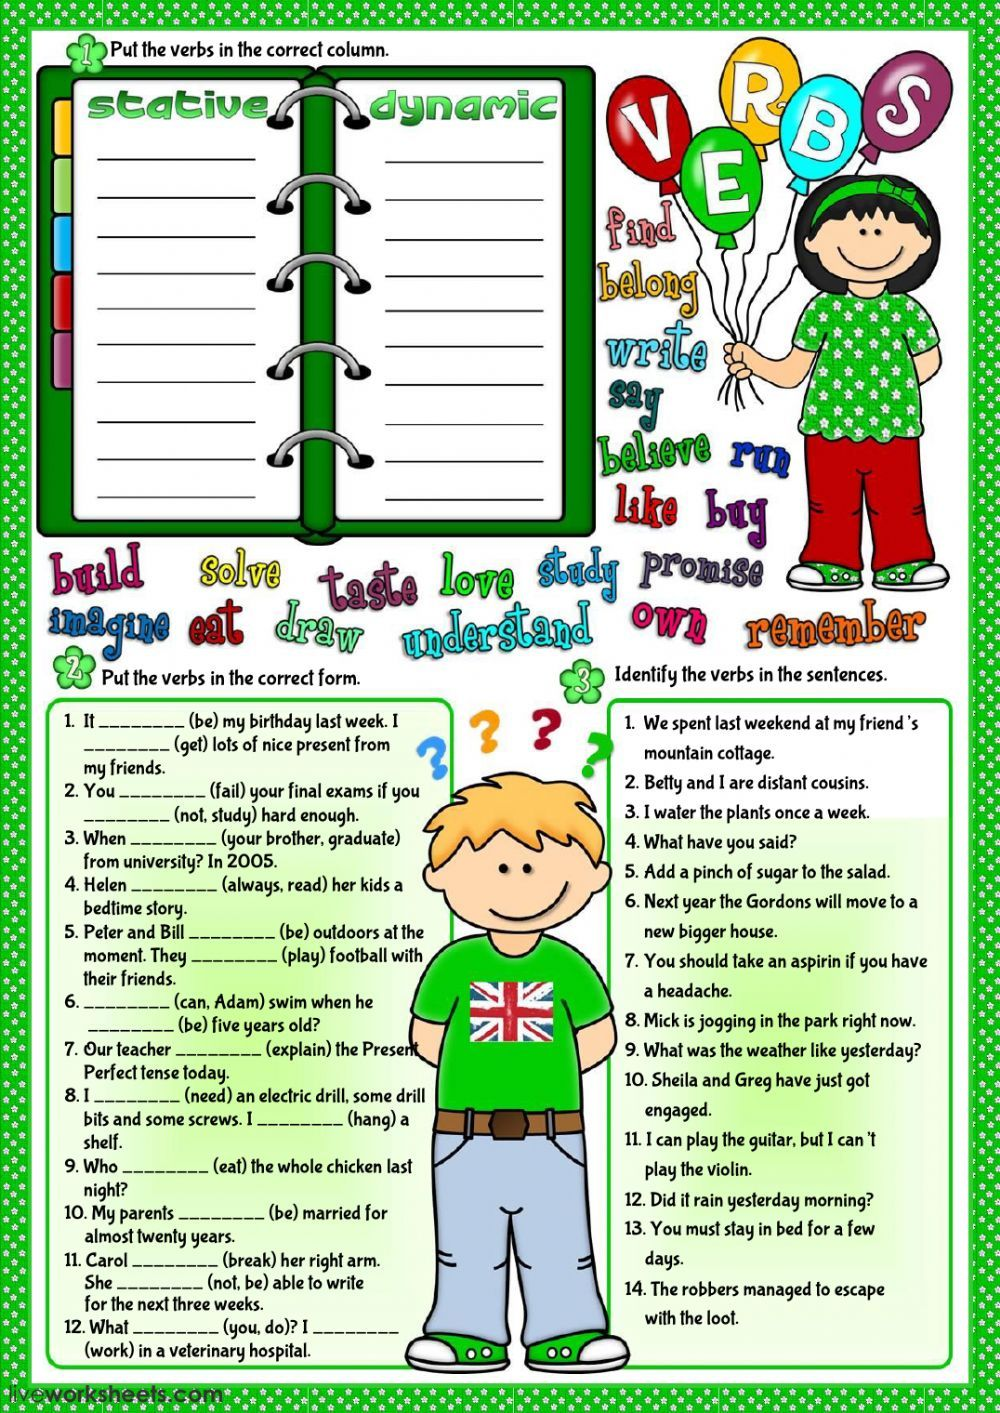 Verb Tenses Interactive And Downloadable Worksheet You Can Do The Exercises Online Or Download The Verb Teaching English Grammar English As A Second Language [ 1413 x 1000 Pixel ]